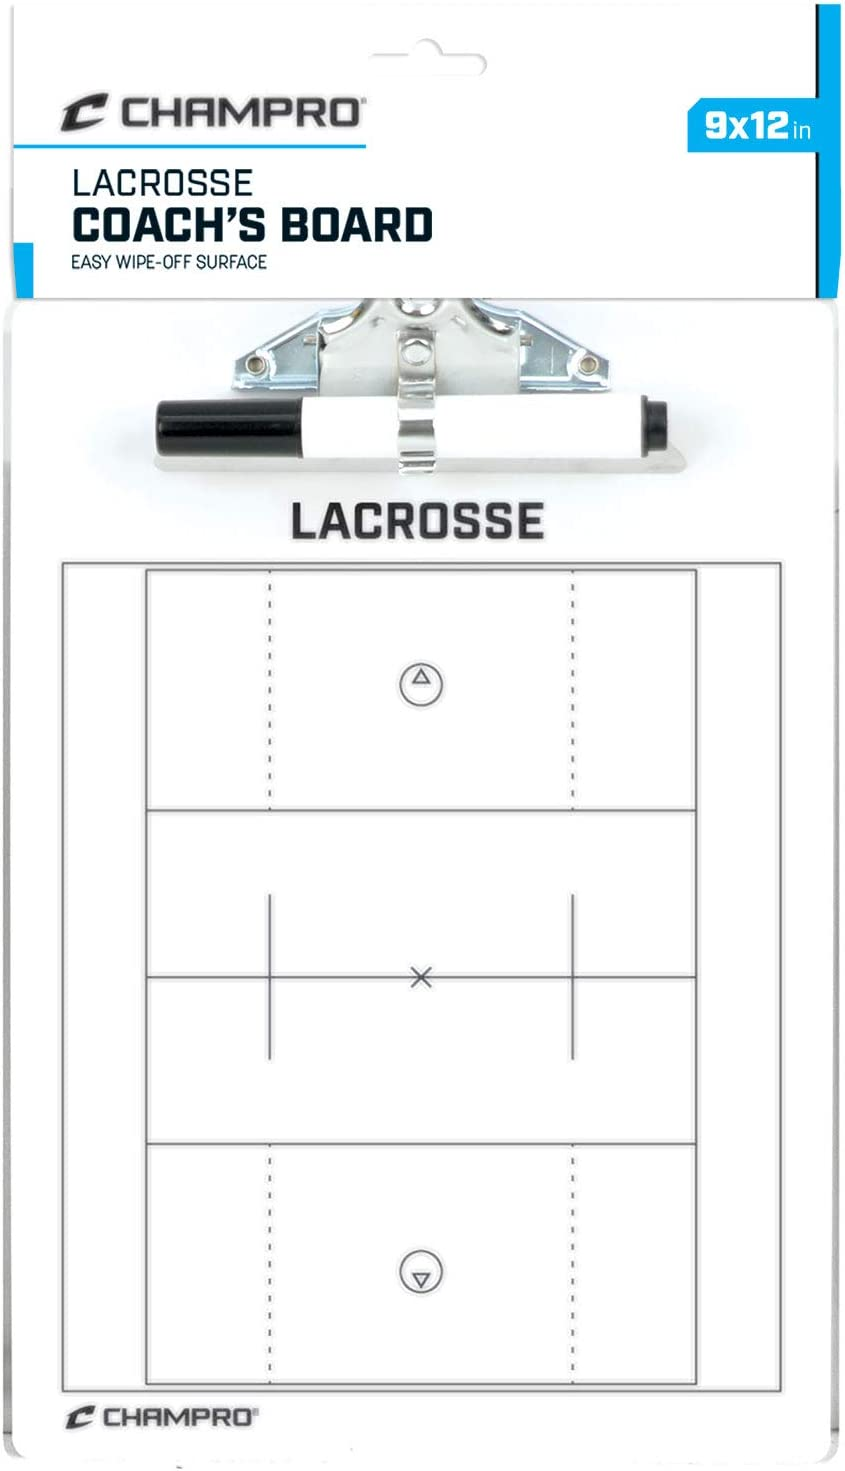 Omaha Mall Champro Lacrosse Coach's Board 12 9-Inch Complete Free Shipping White x